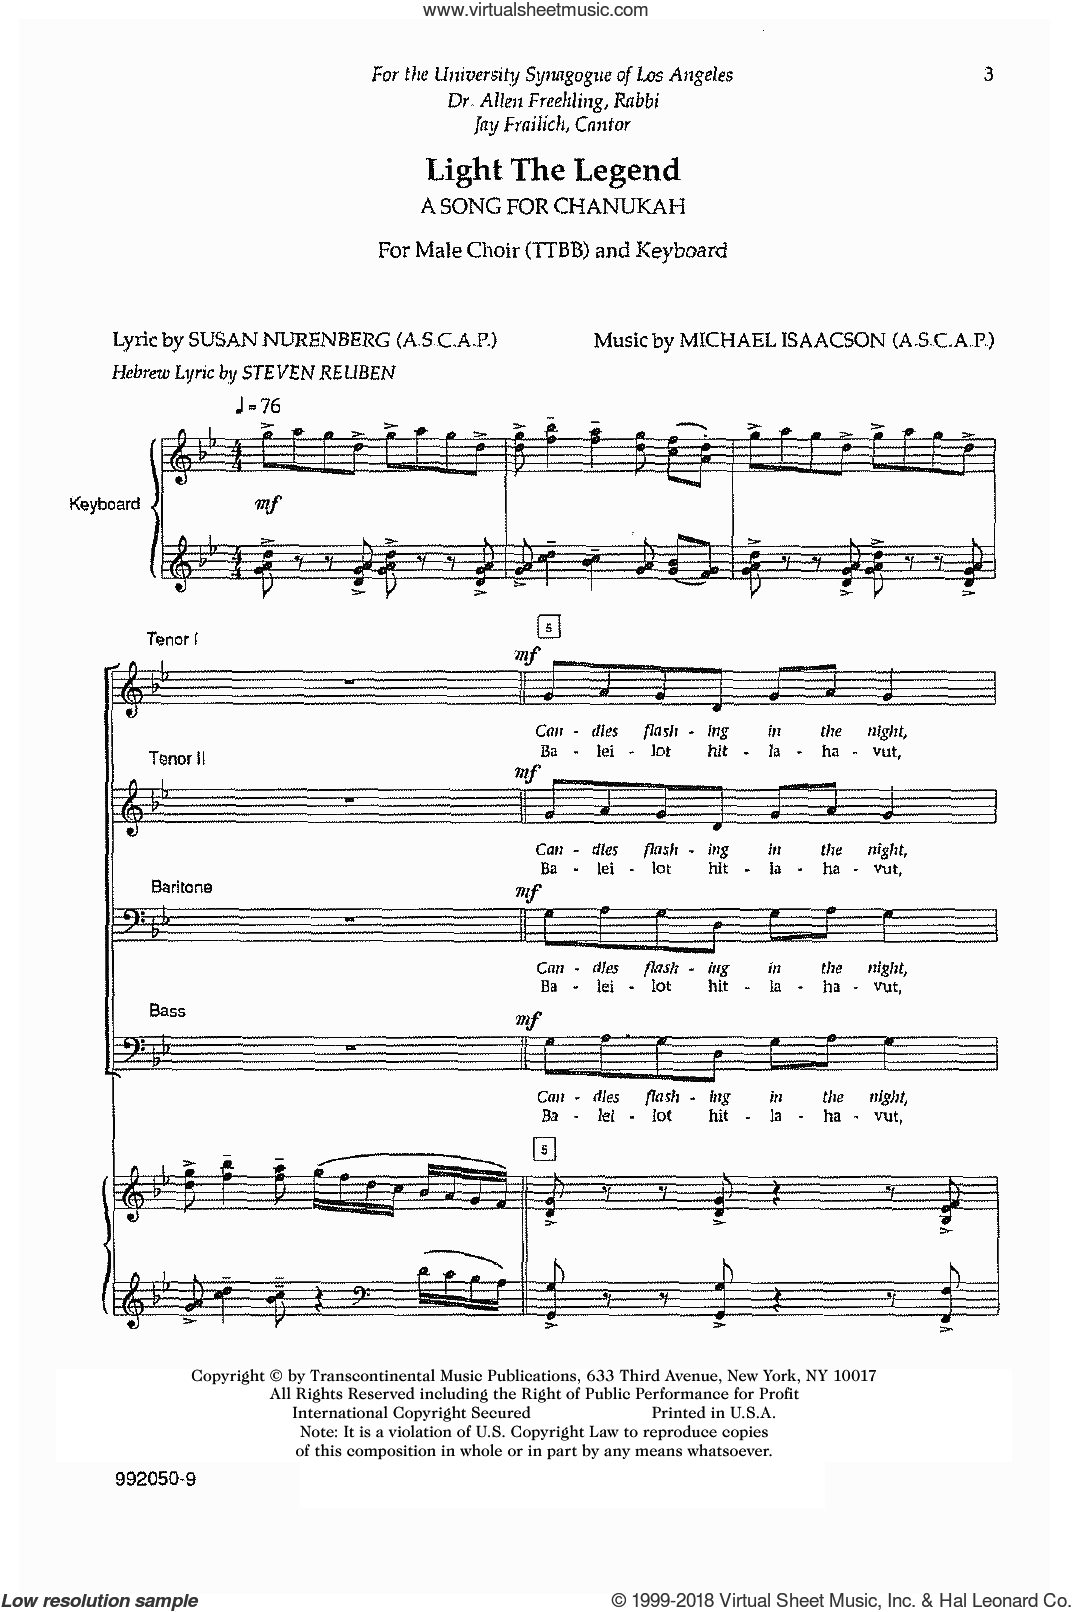 Light The Legend sheet music for choir (TTBB: tenor, bass) by Michael Isaacson, intermediate skill level